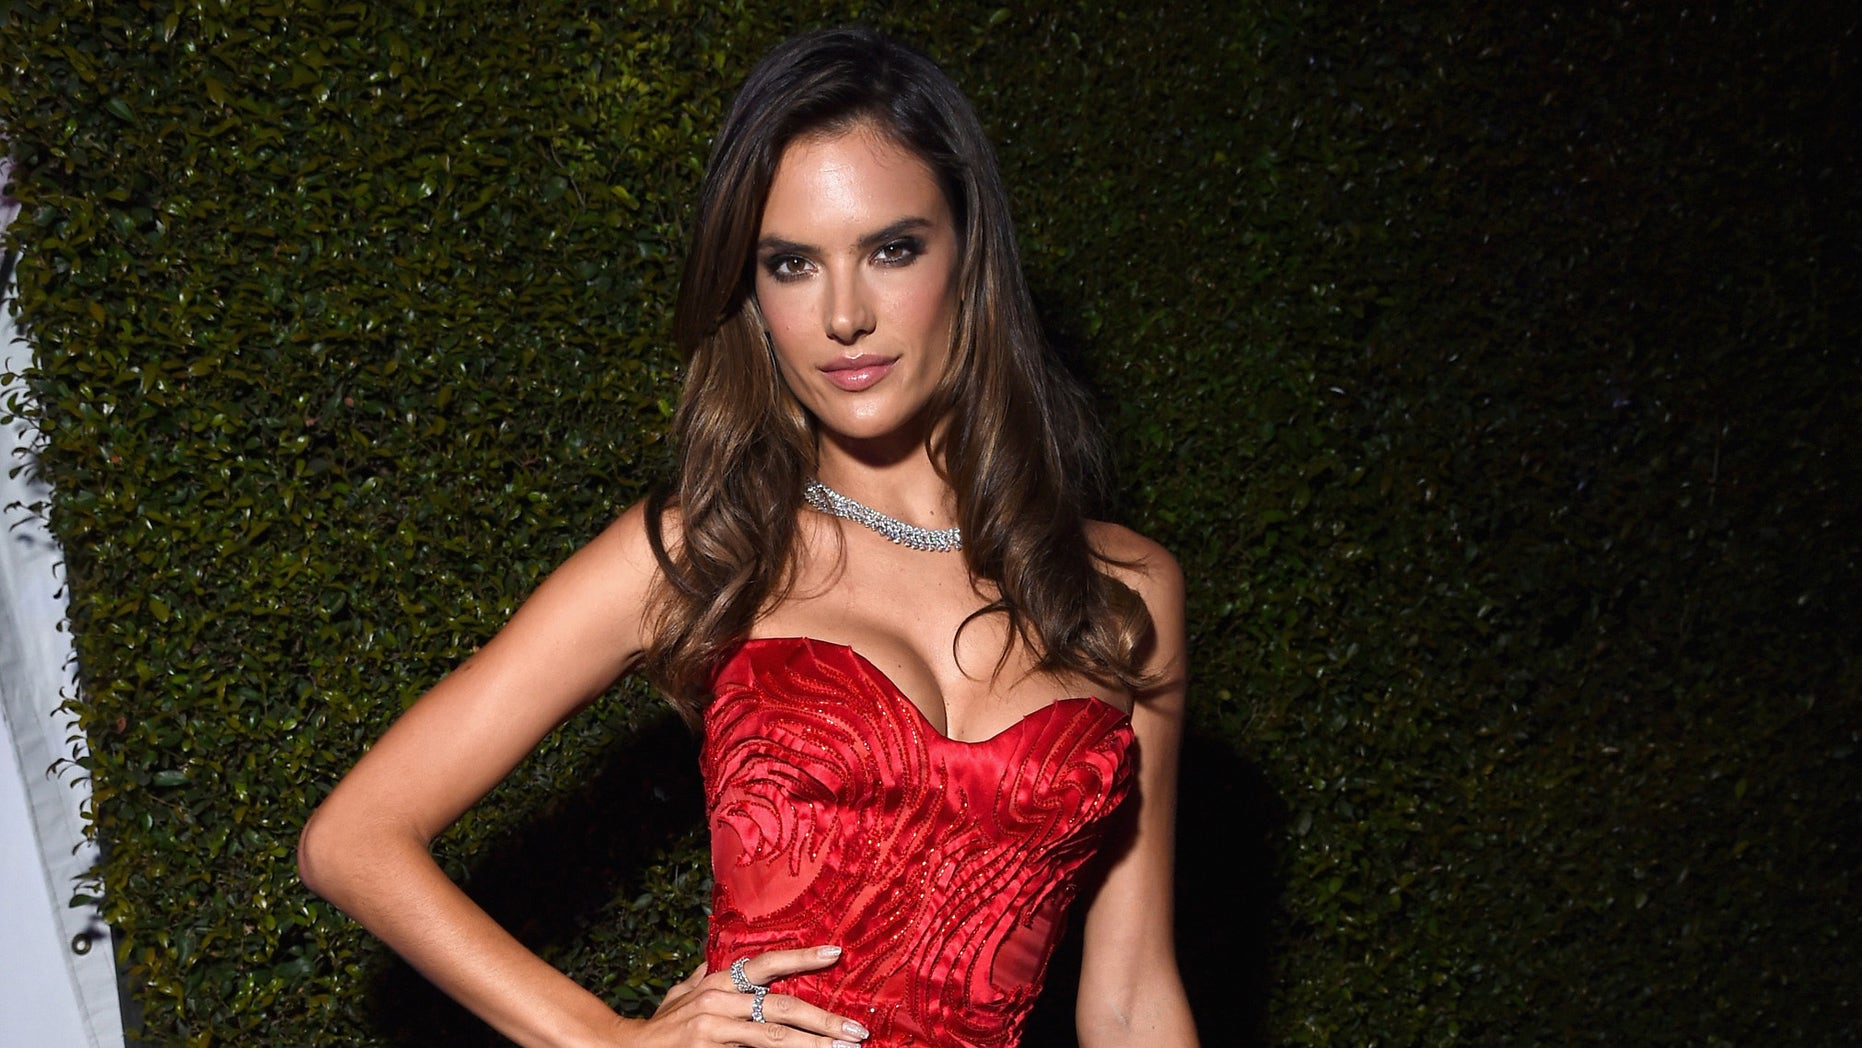 LOS ANGELES, CA - FEBRUARY 22: Model Alessandra Ambrosio attends the 23rd Annual Elton John AIDS Foundation Academy Awards Viewing Party on February 22, 2015 in Los Angeles, California.  (Photo by Dimitrios Kambouris/Getty Images  for EJAF)